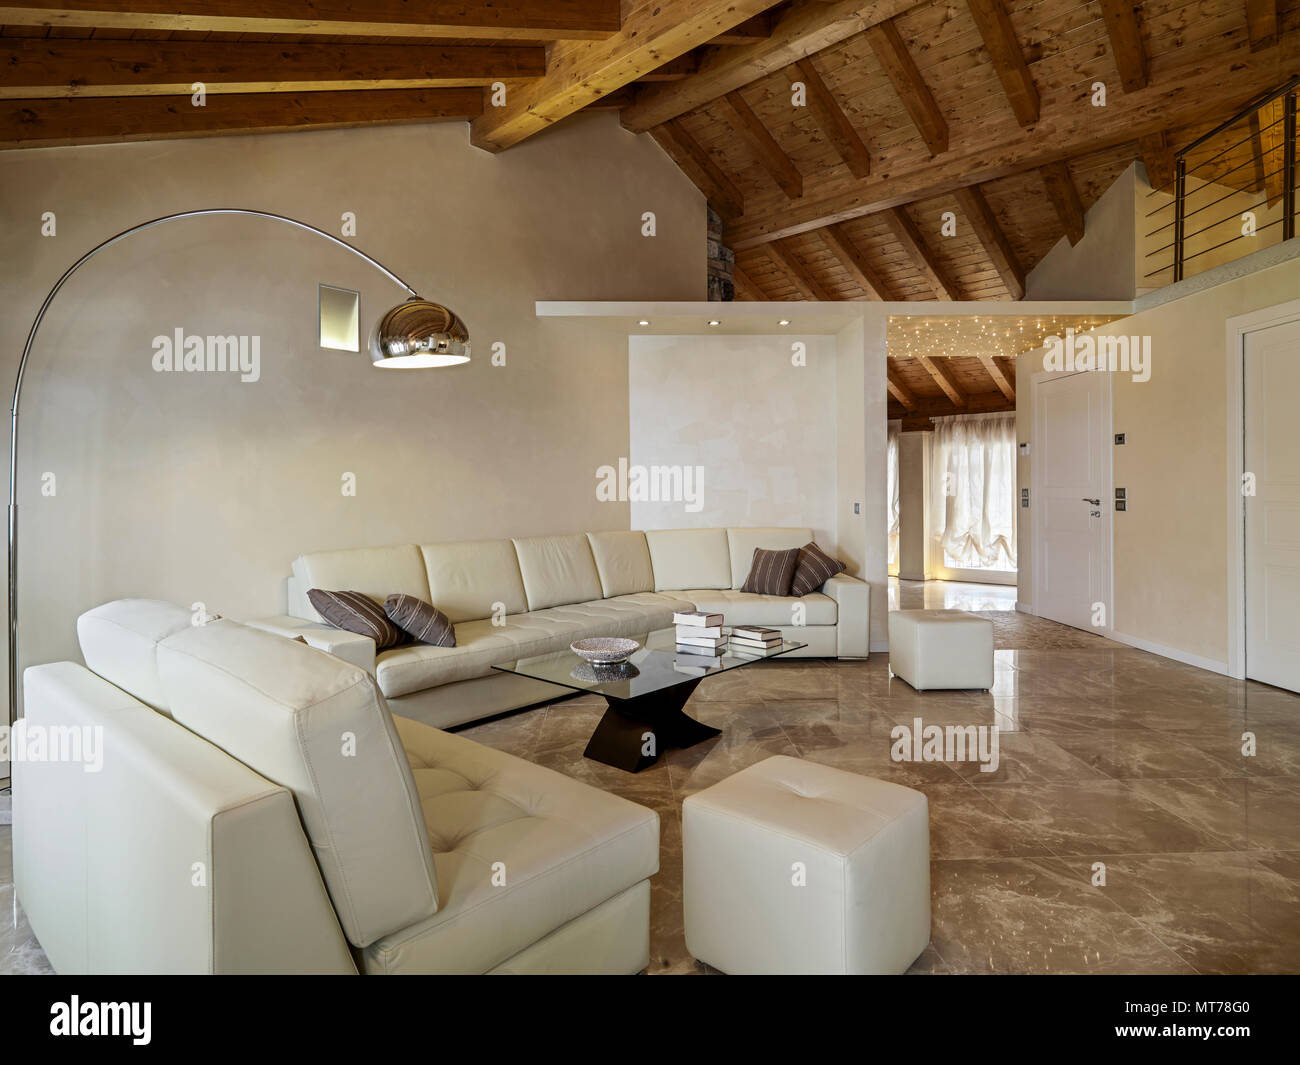 living room interior in foreground the beige leather sofa and the glass coffee table with arch floor lamp the ceiling is made of wooden beams exposed - Stock Image